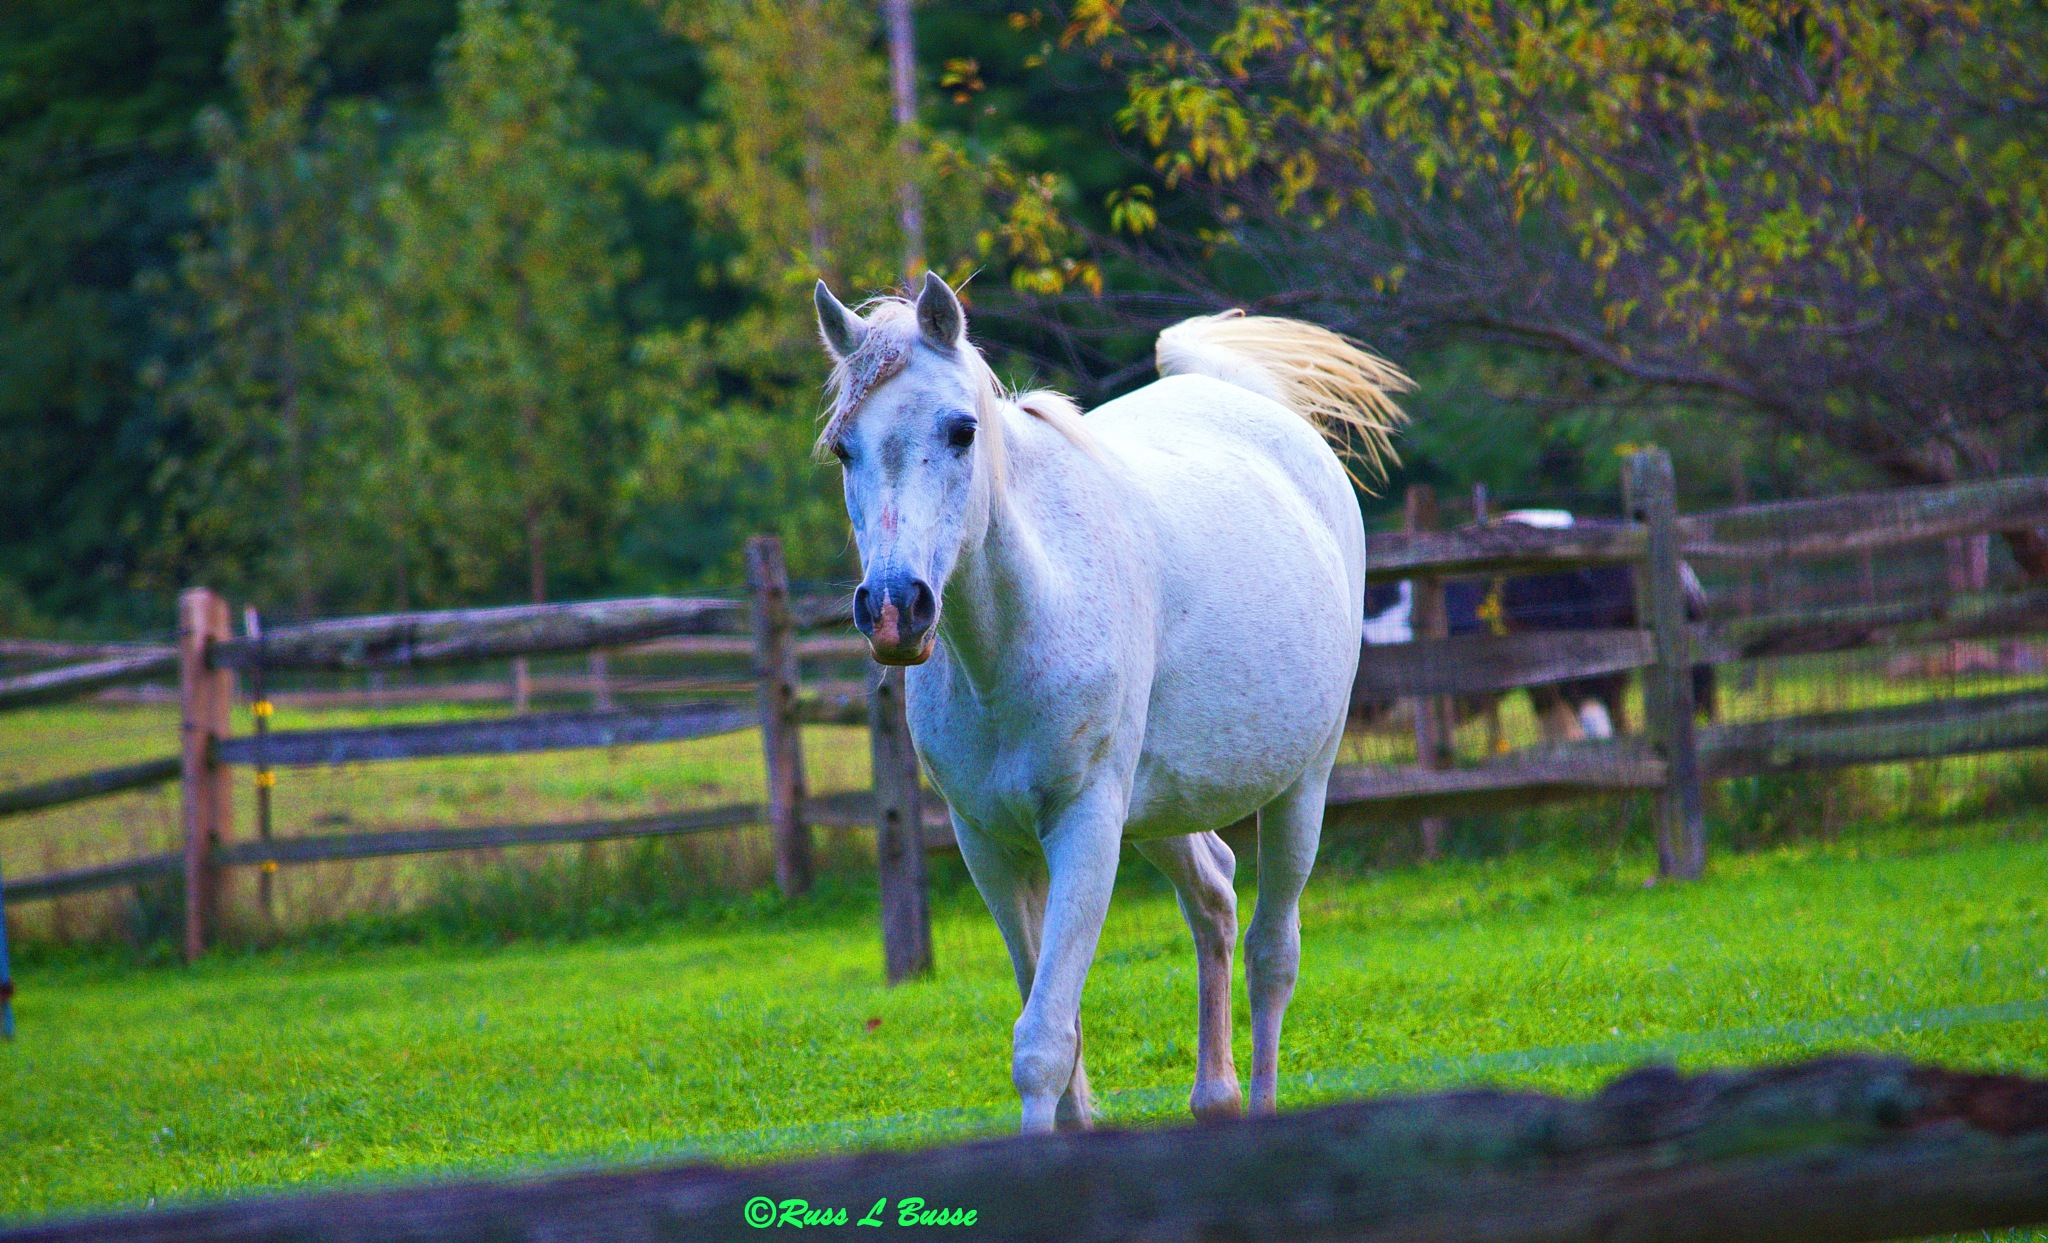 Horseplay by Russ L Busse